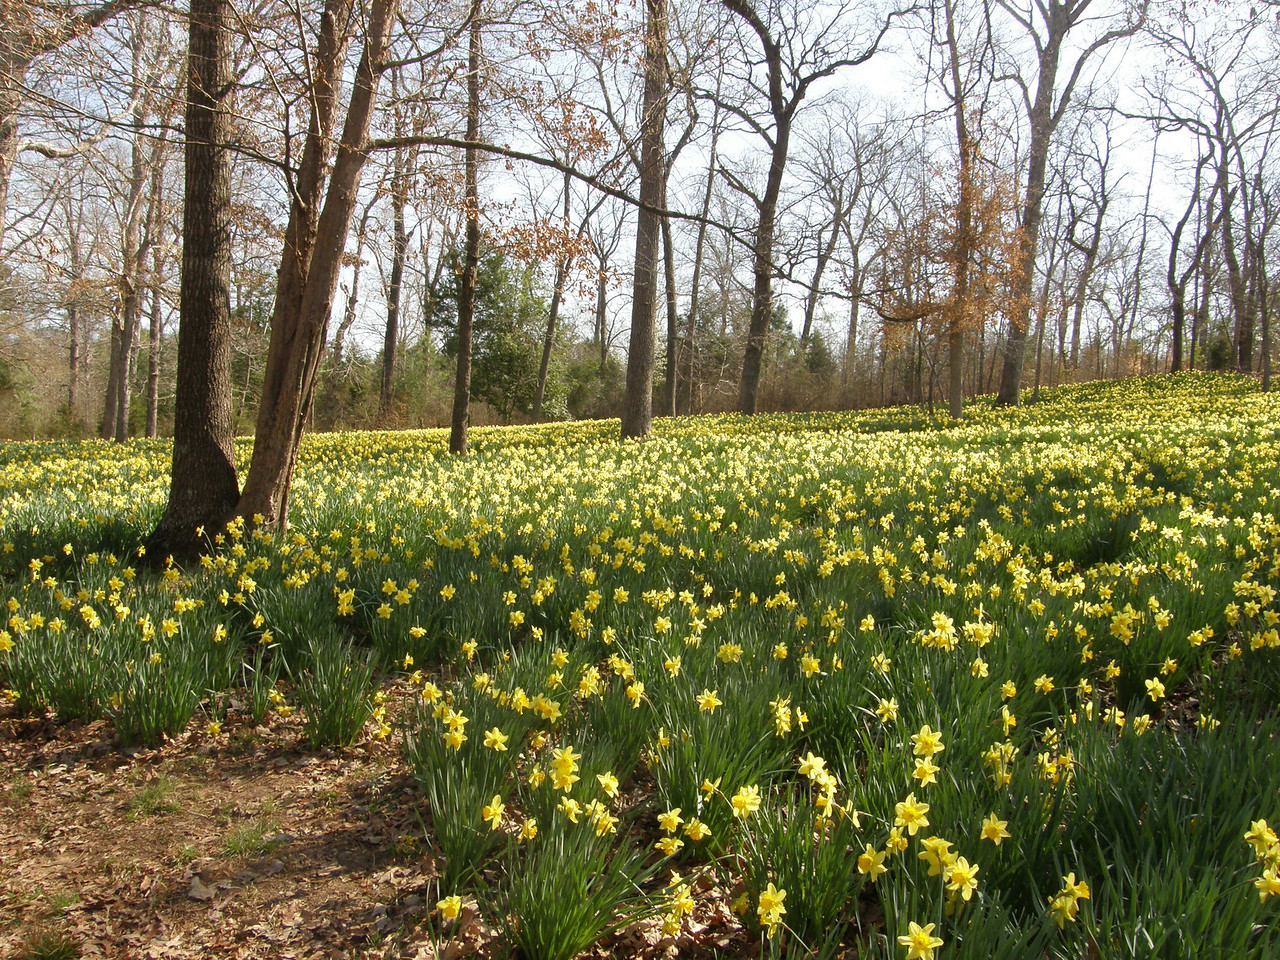 Ms. Lee ordered a boxcar full of Daffodil bulbs from Holland and had 40 workers plant them around the farm.  Neat.